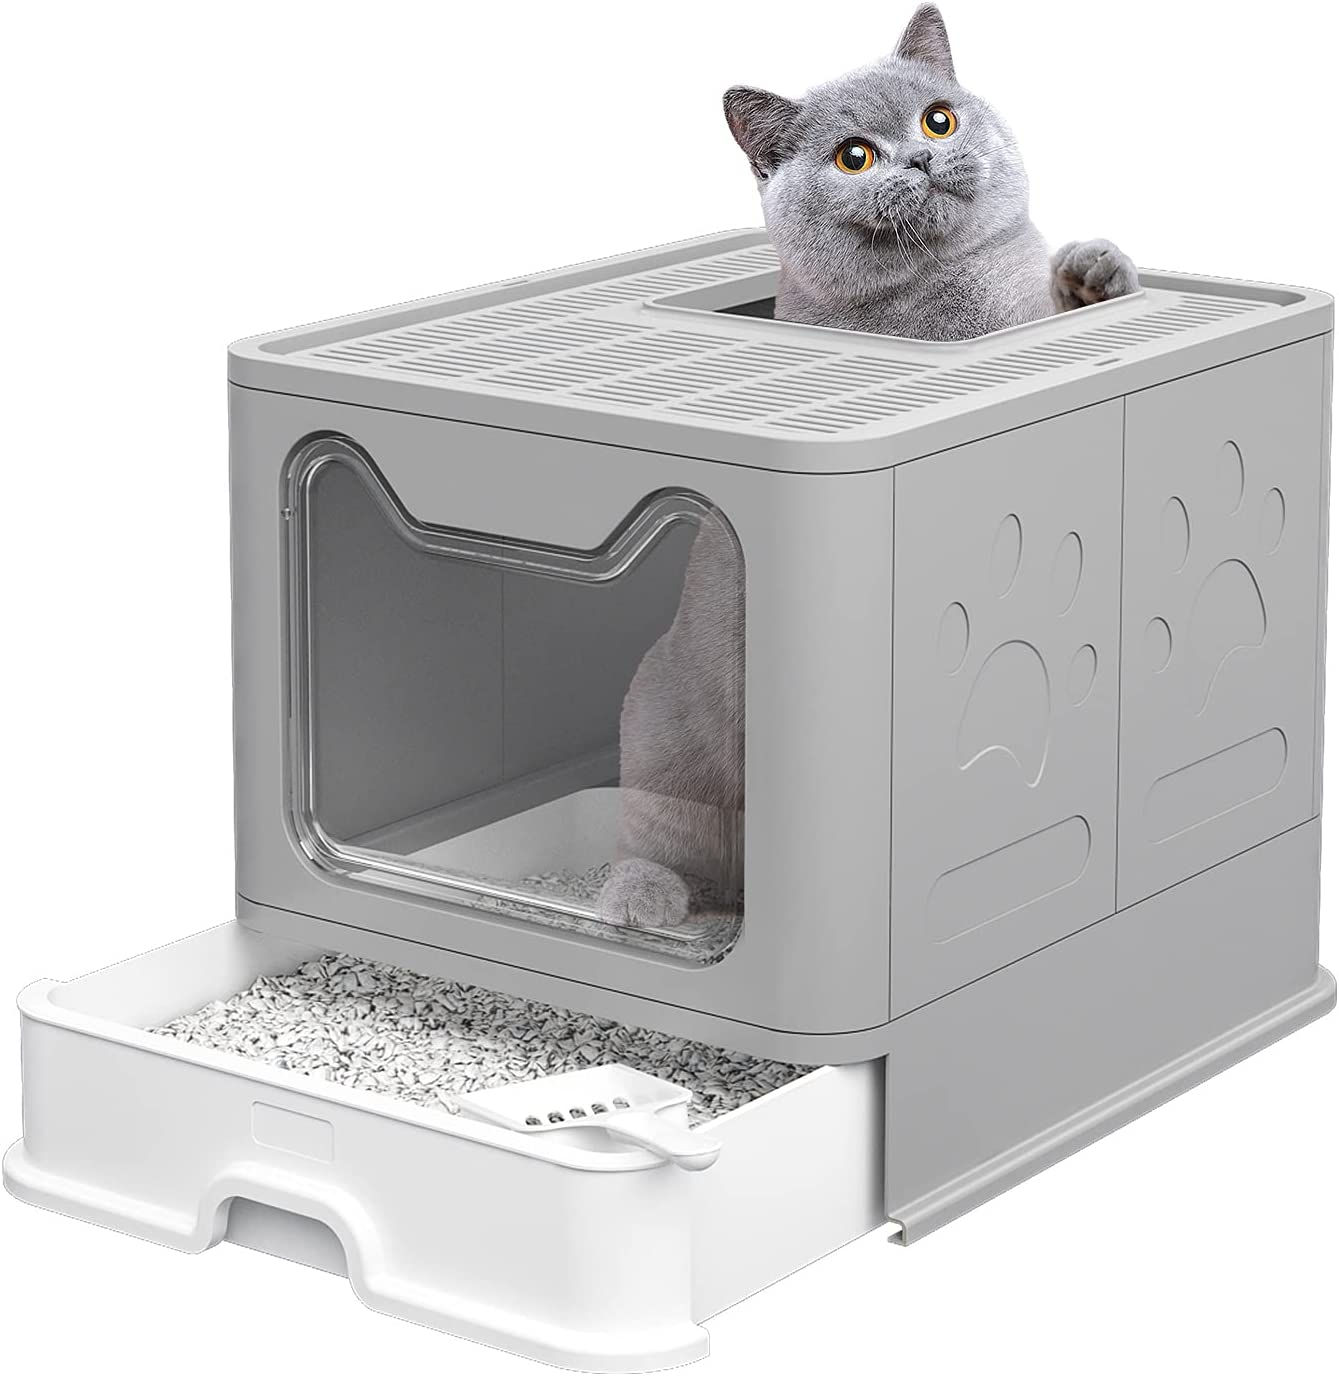 Aeitc Large Cat Max 52% OFF Litter Box with Max 83% OFF Ent Potty Enclosed Top Lid